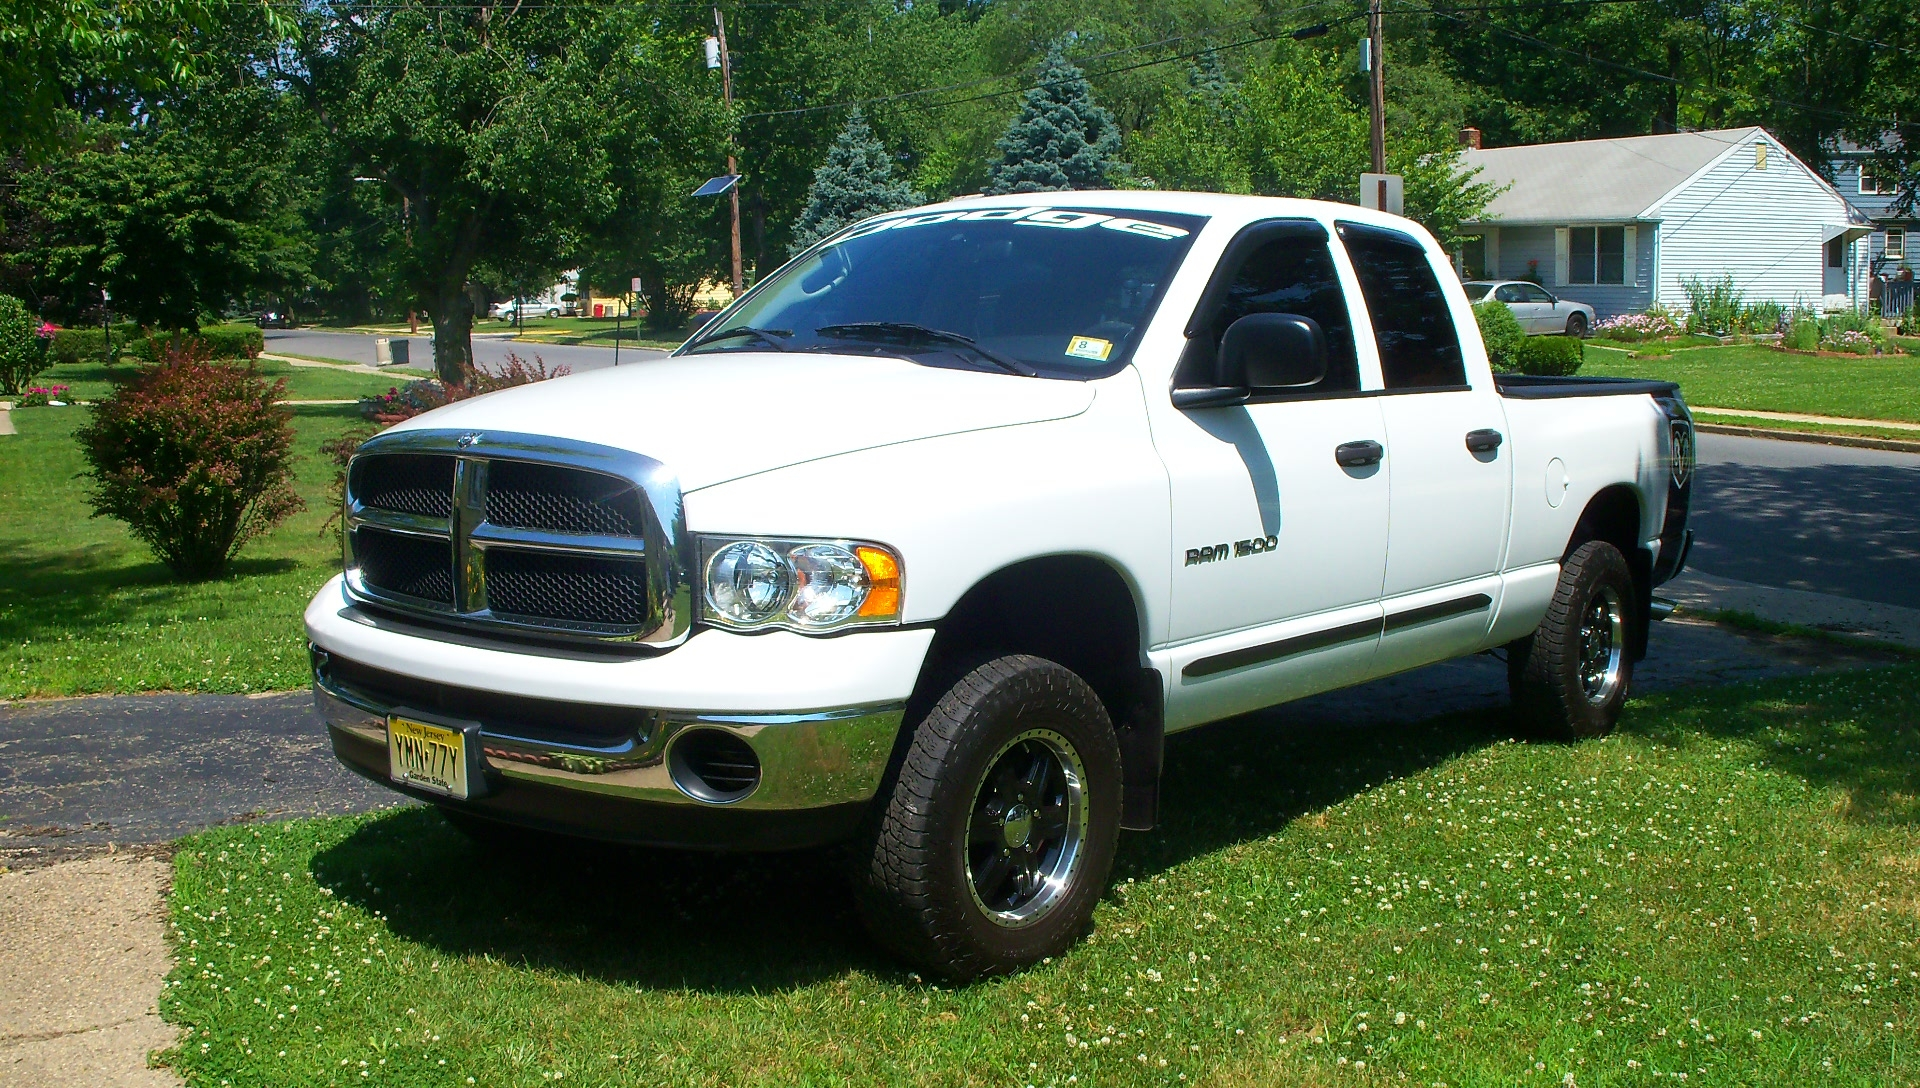 dodgekid05 2005 dodge ram 1500 quad cab specs photos modification info at cardomain. Black Bedroom Furniture Sets. Home Design Ideas